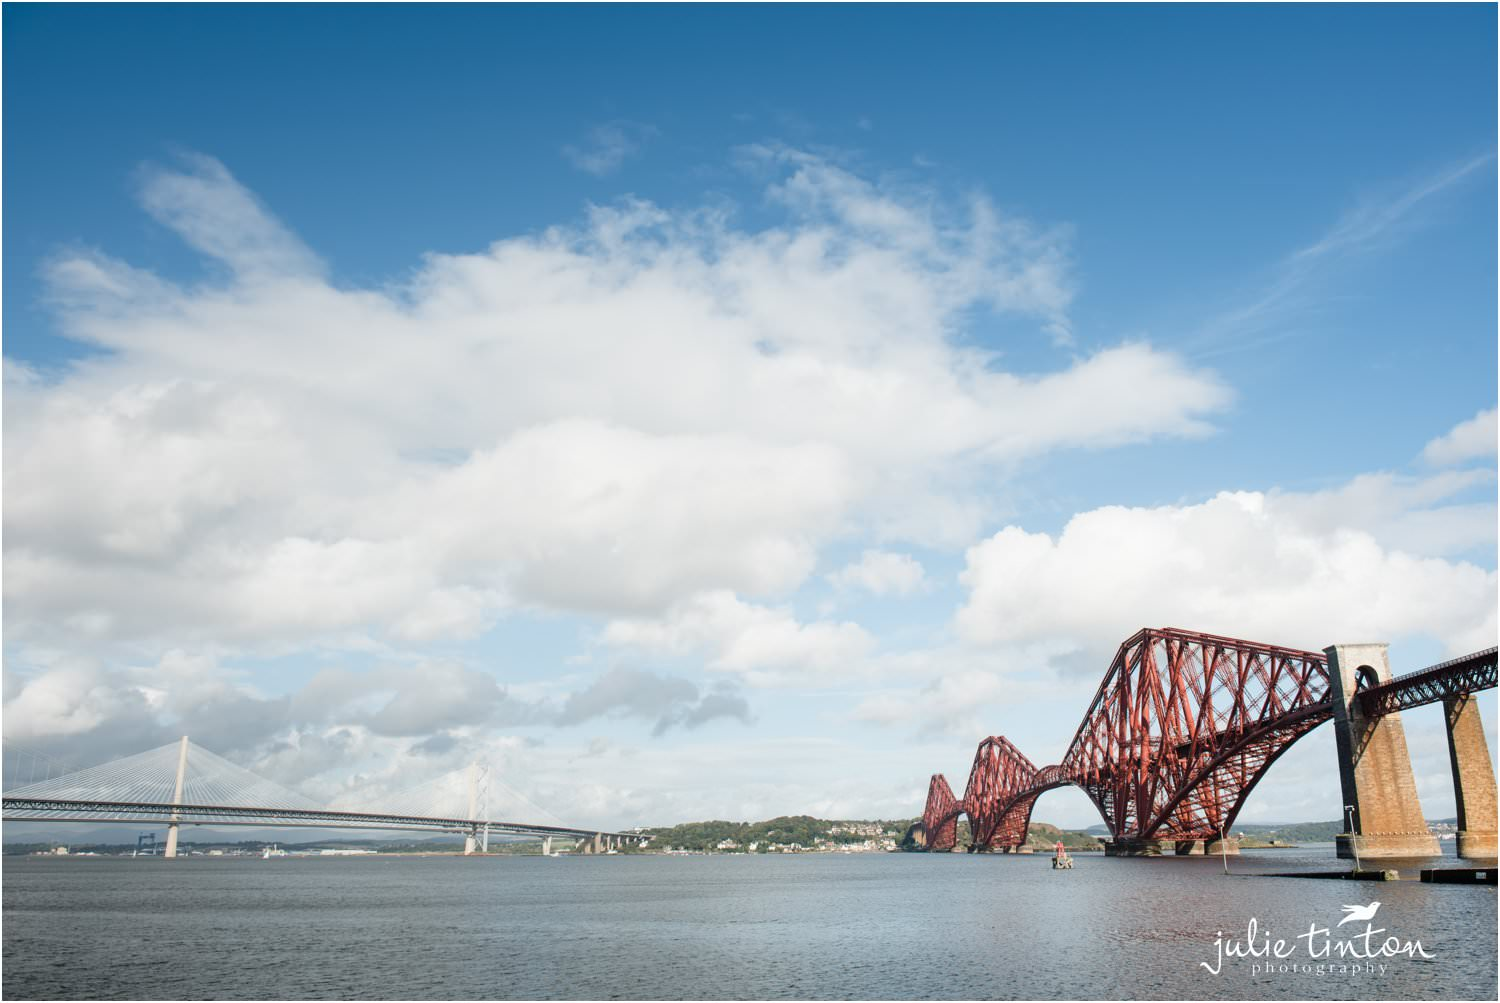 South Queensferry Forth Road Bridge and Queensferry Crossing